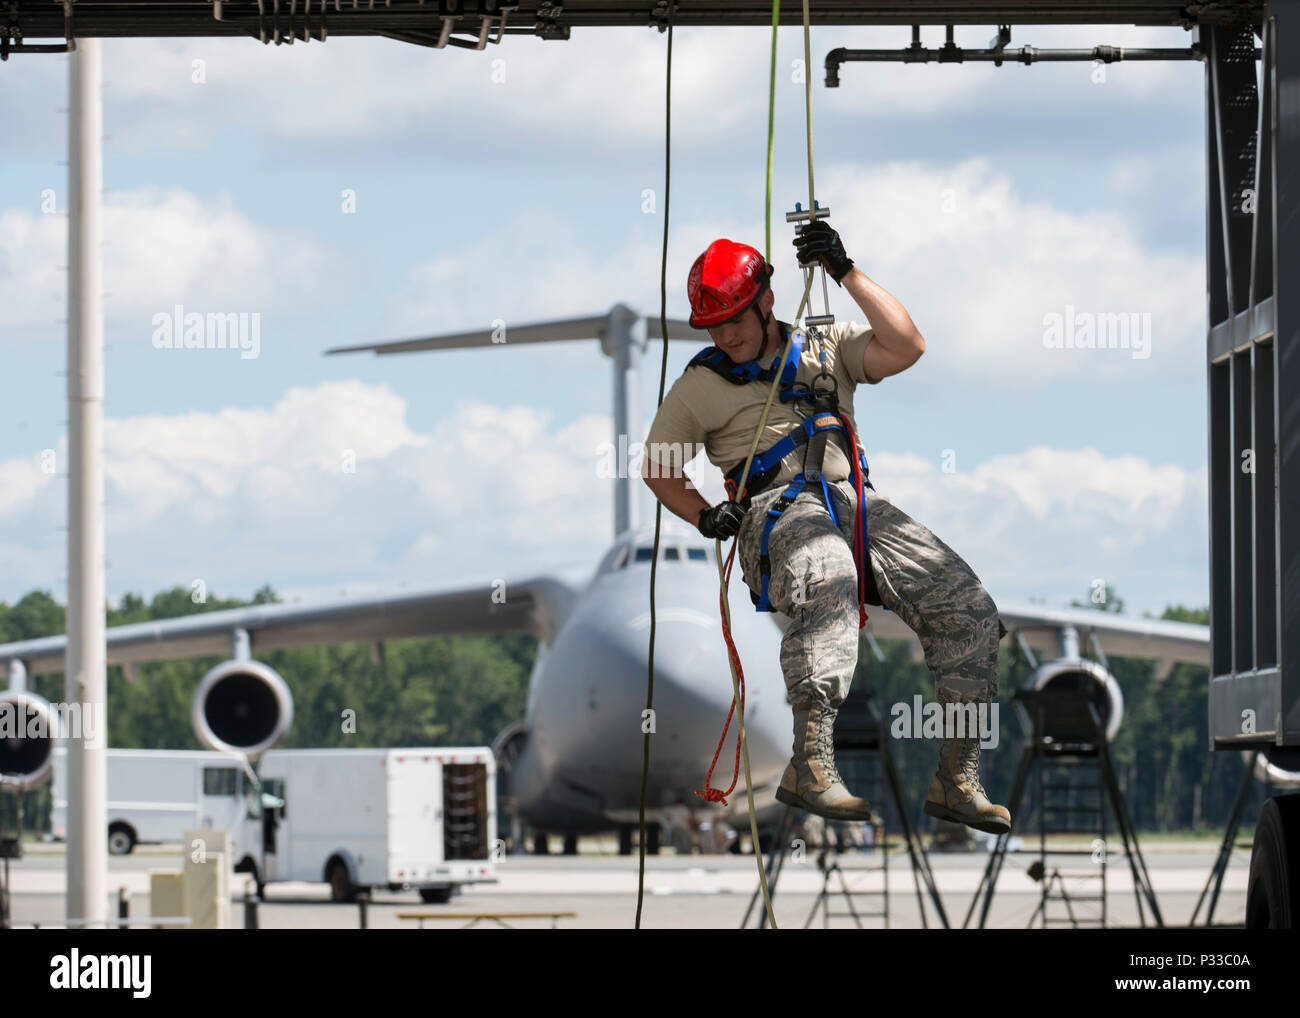 Senior Airman Dallas Gullion, 436th Civil Engineer Squadron firefighter, repels off of a mobile T-tail maintenance stand Aug. 17, 2016, at Dover Air Force Base, Del. Gullion learned rope rescue techniques during a Rescue Technician Course. (U.S. Air Force photo by Senior Airman Zachary Cacicia) - Stock Image